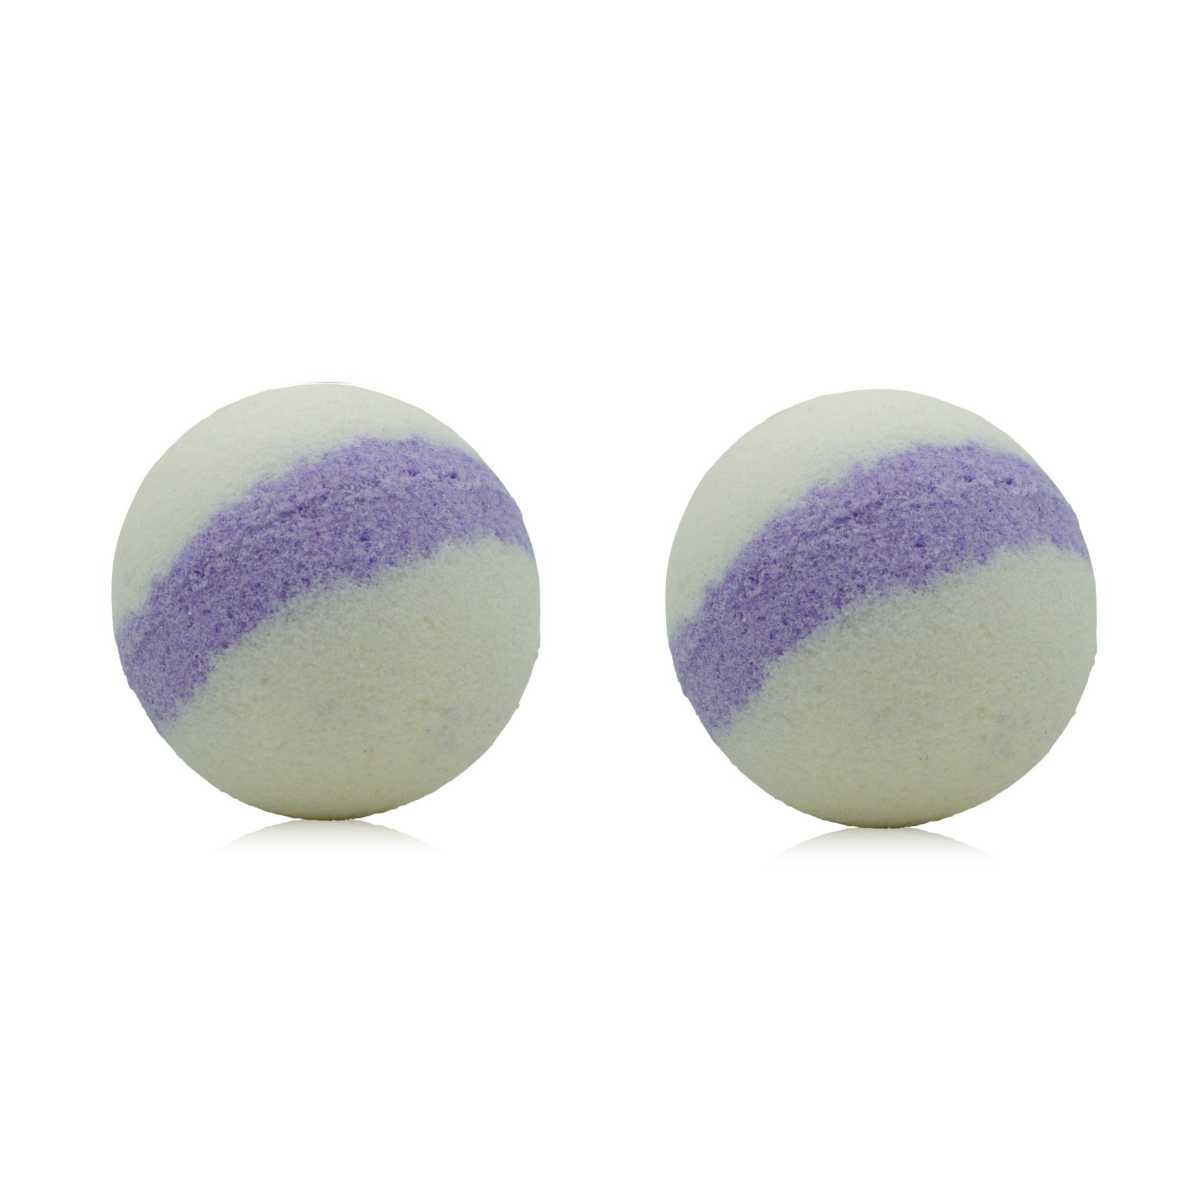 Lavender Lemongrass Bath Bomb - 2 Pack